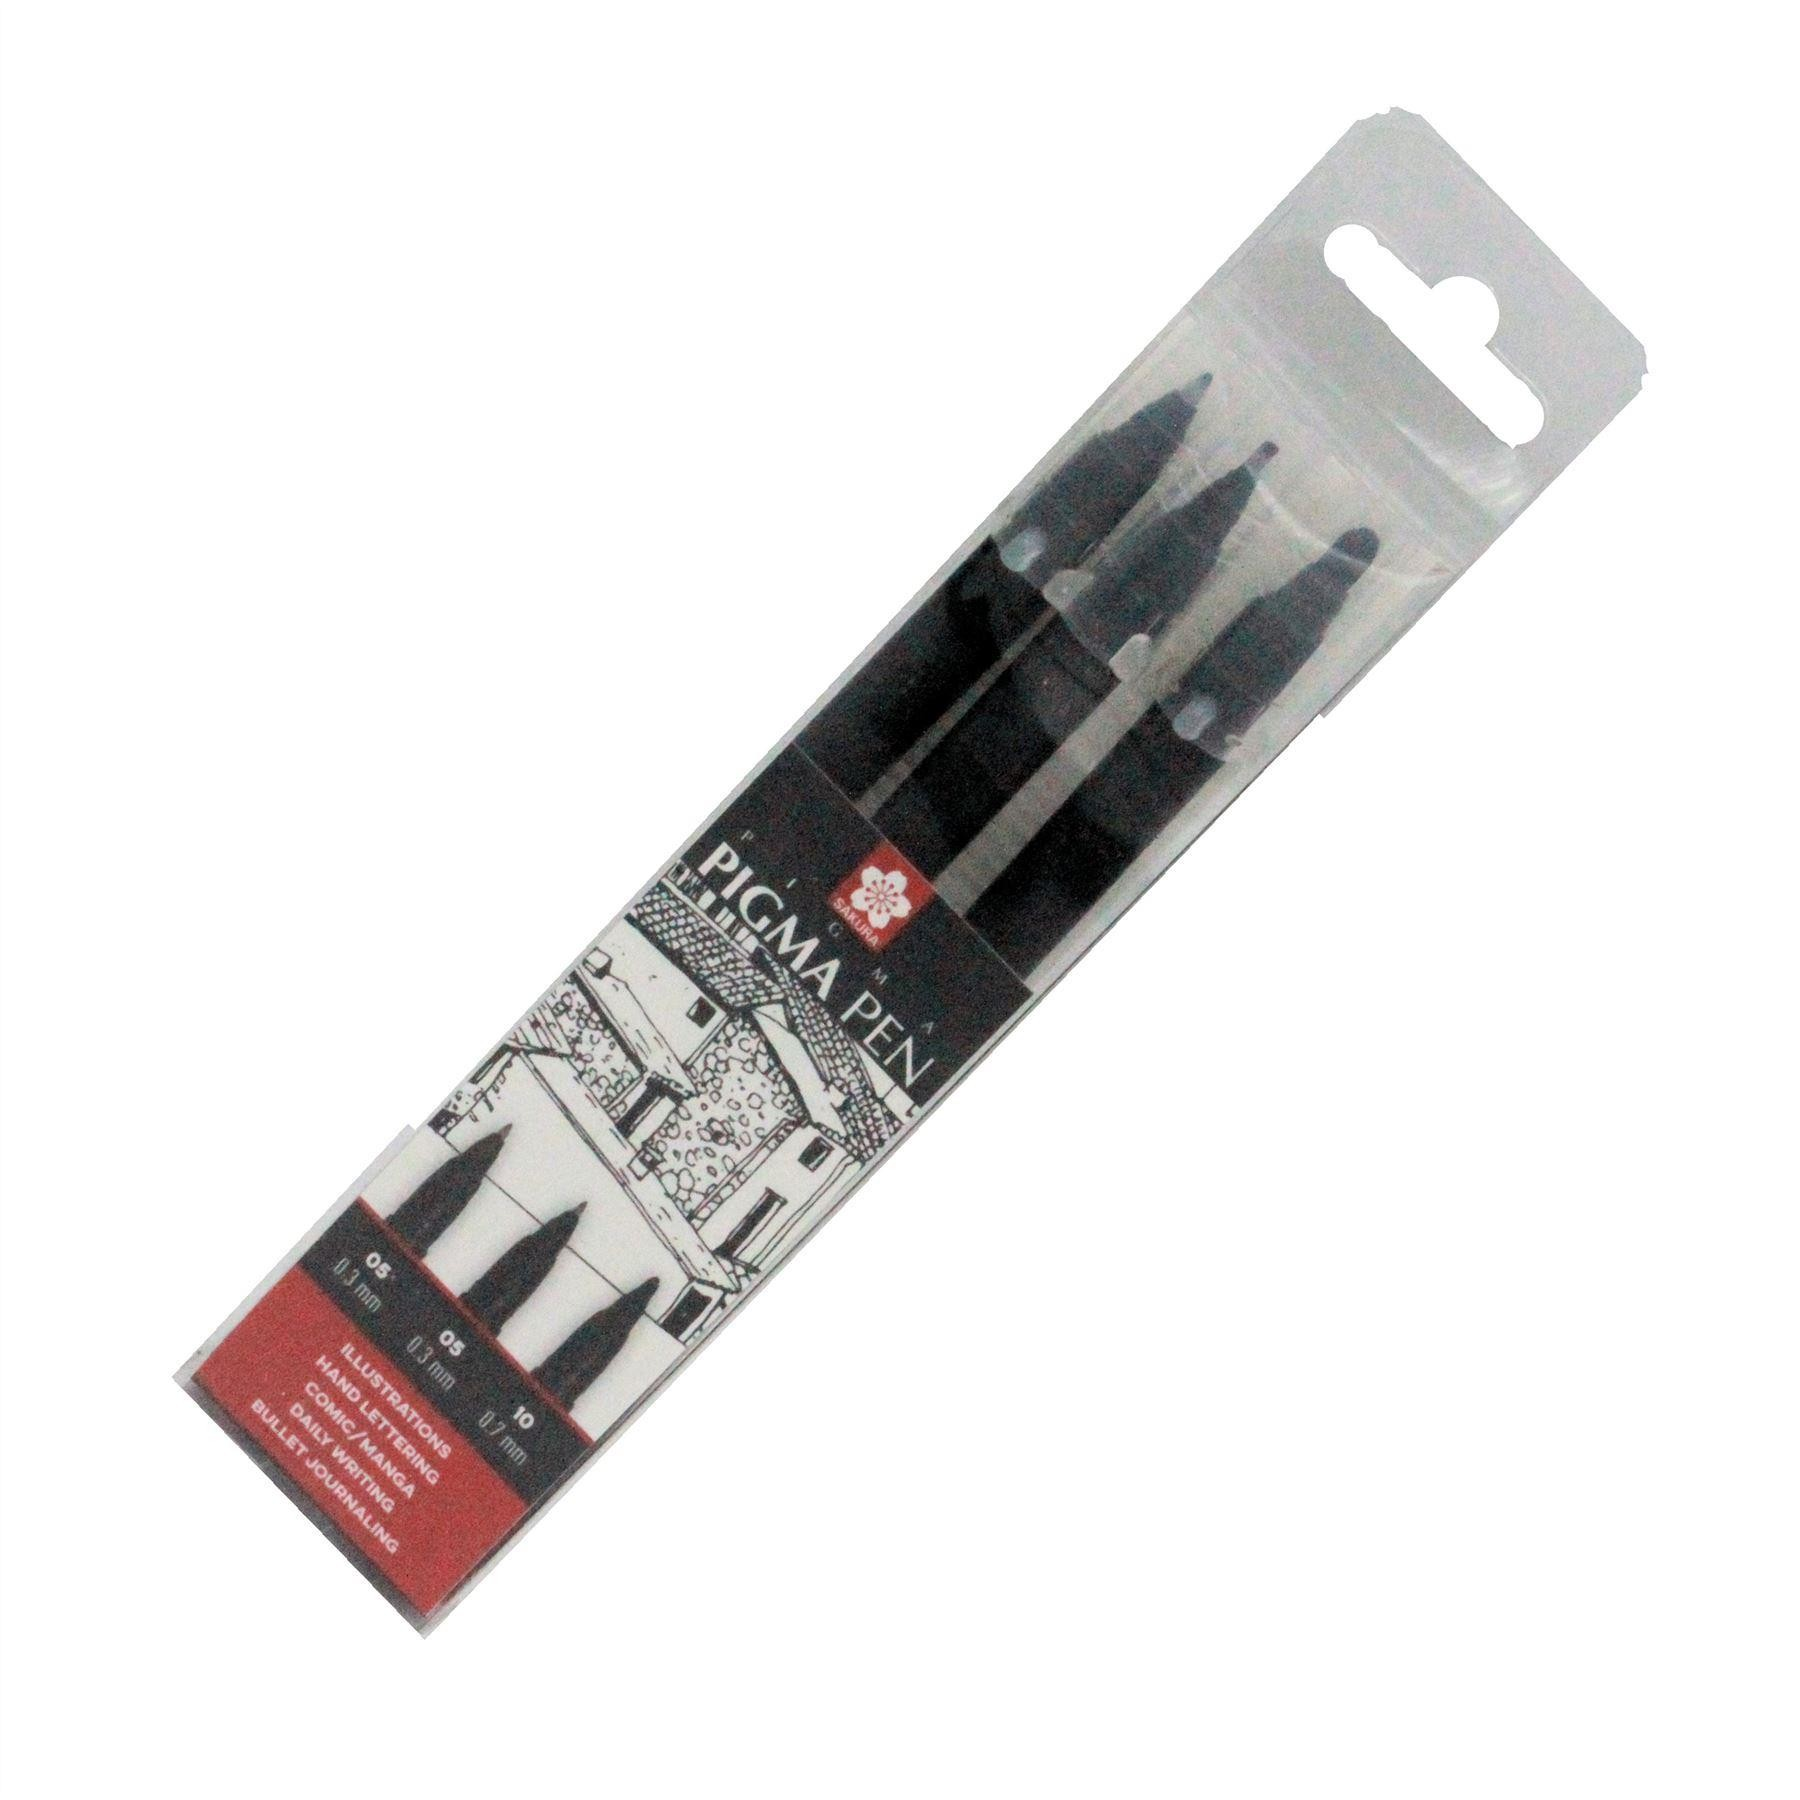 Sakura black Pigment pen set of 3 gel pens 0.3mm 0.7mm